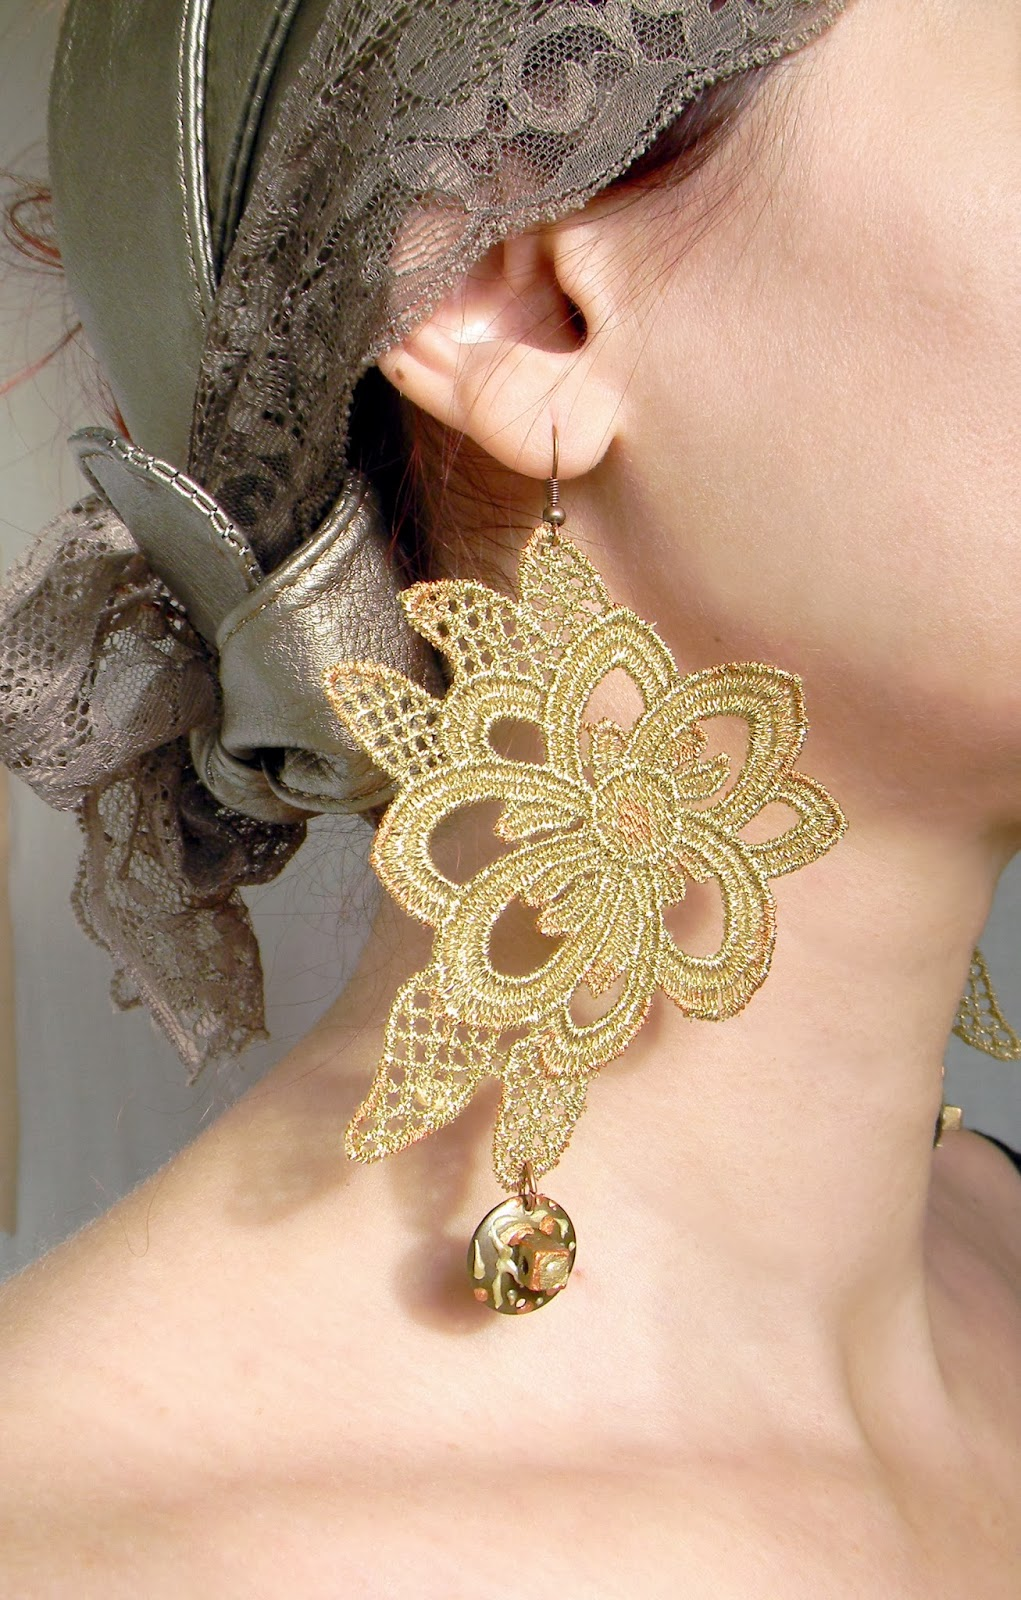 Lace Statement Earrings Golden Metallic Earrings Floral Embroidery Jewelry